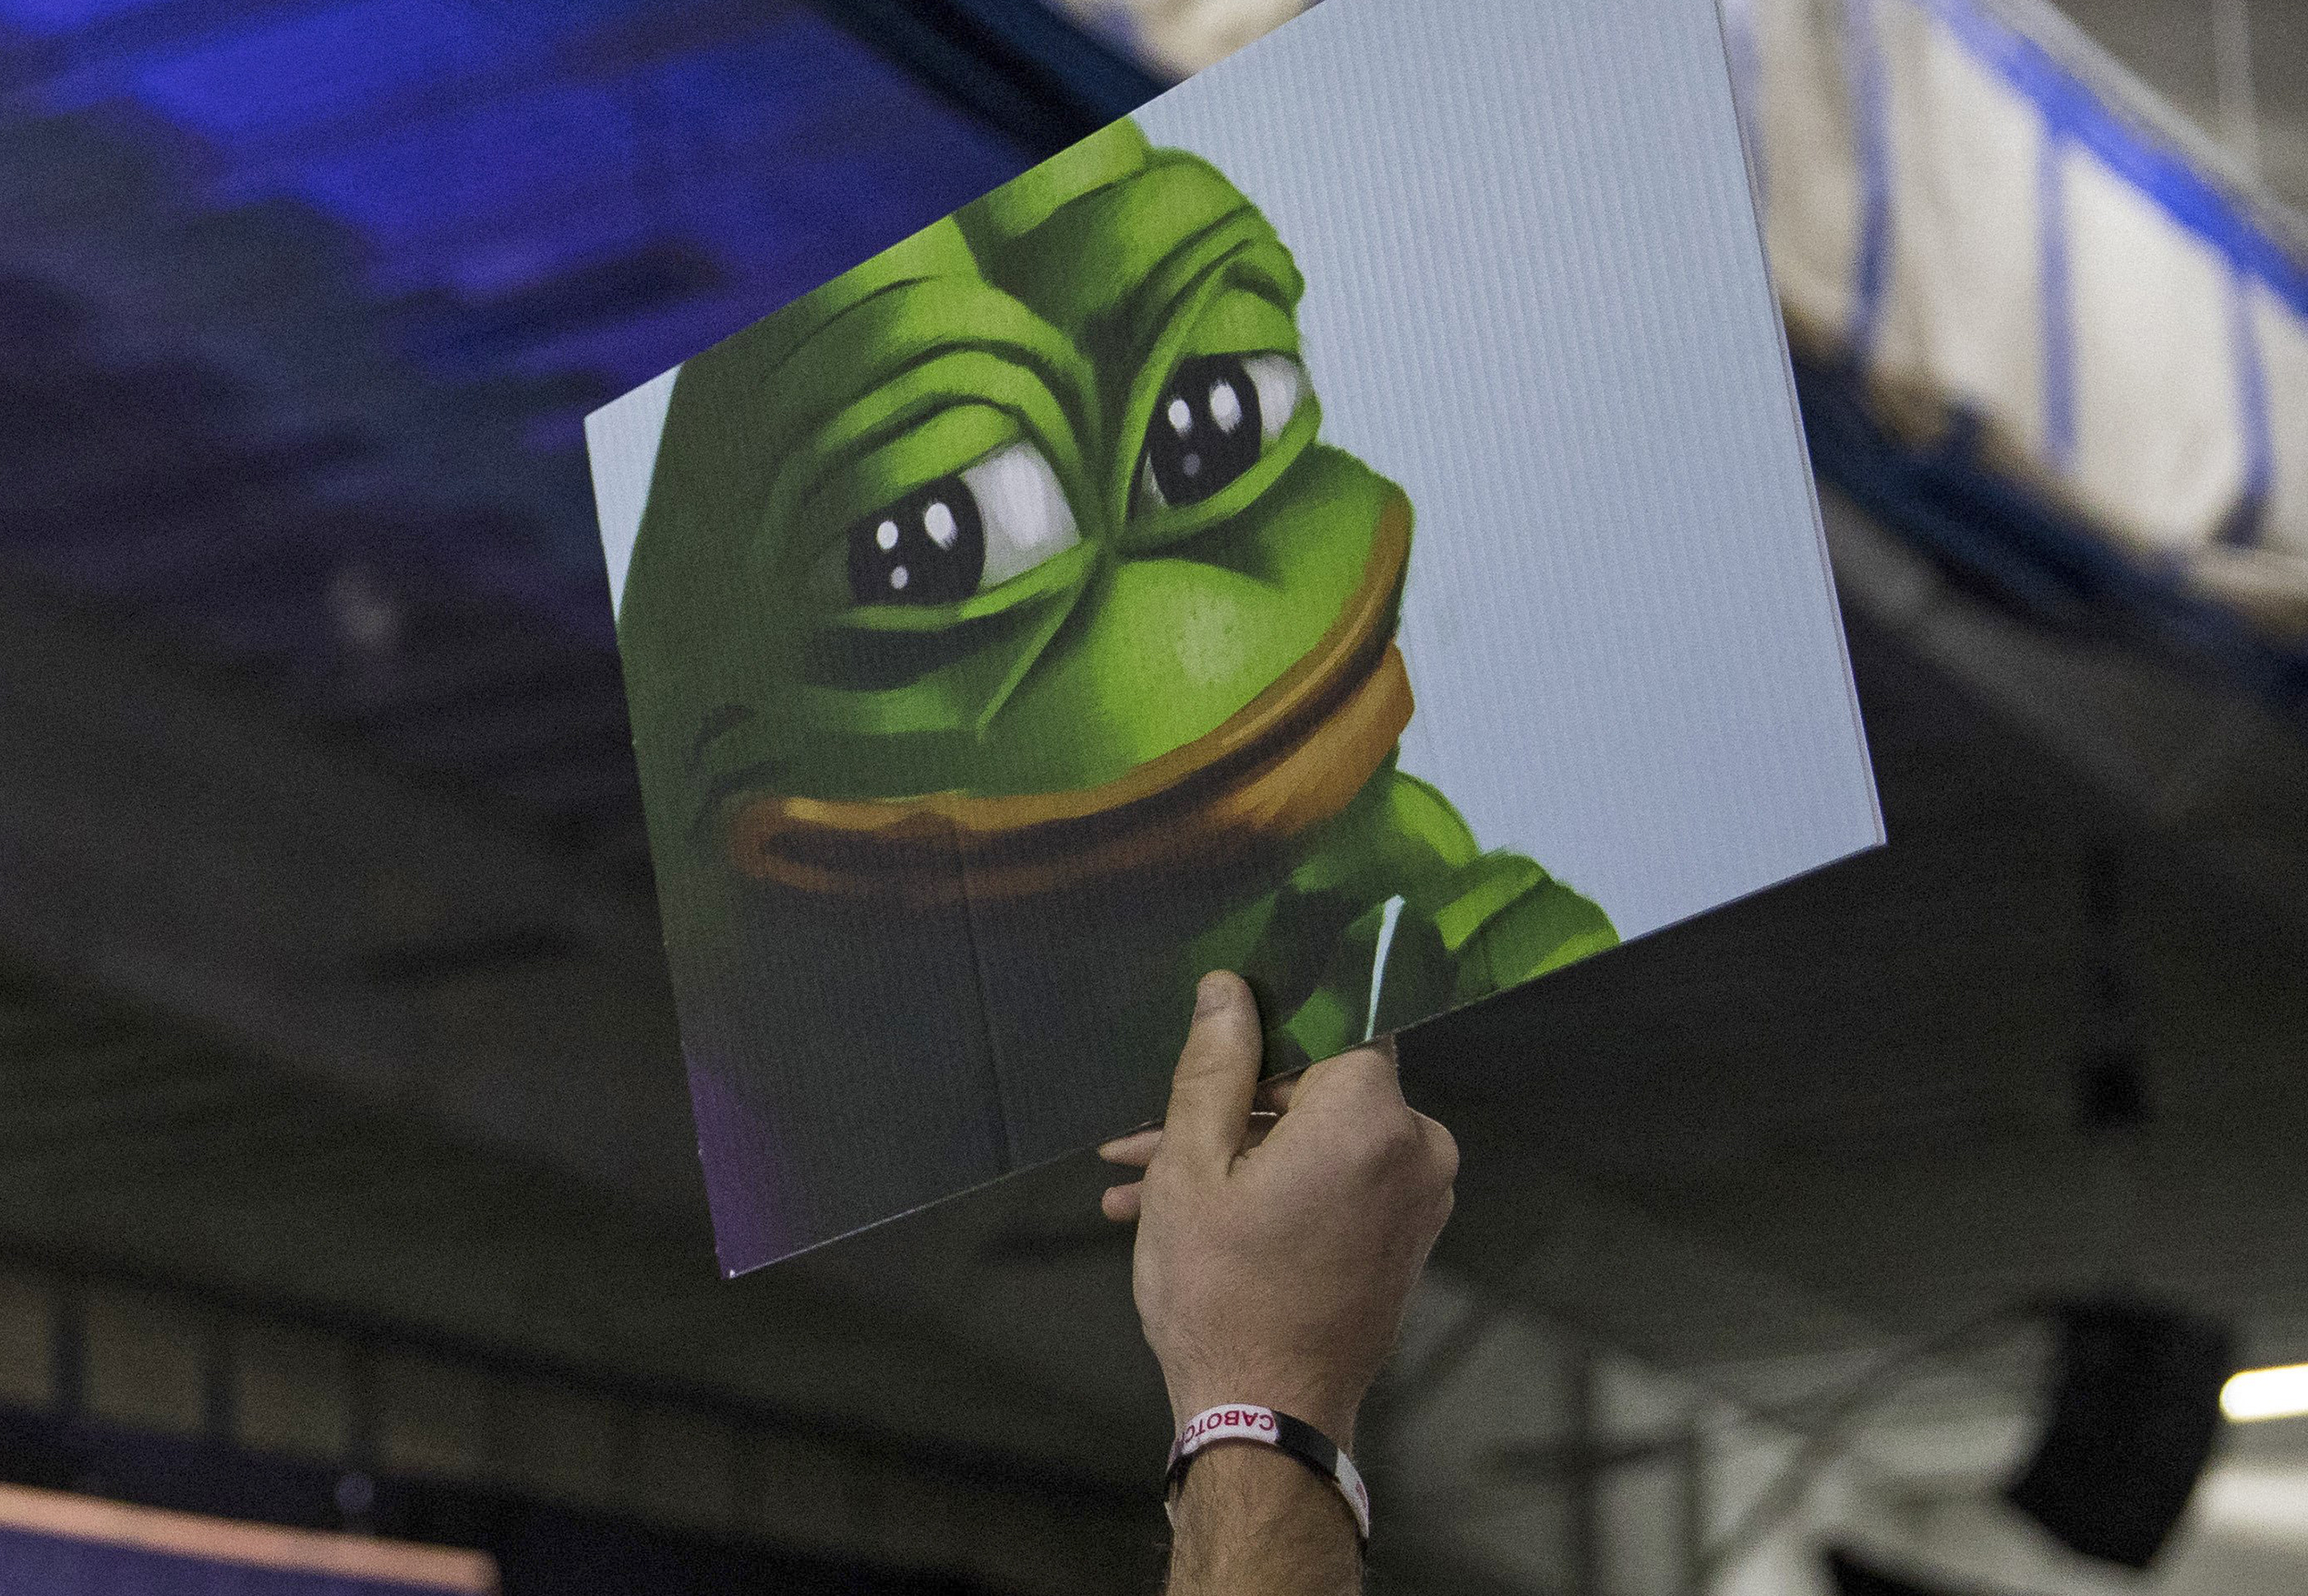 Pepe The Frog Creator Wants To Make Him A Symbol Of Peace And Love